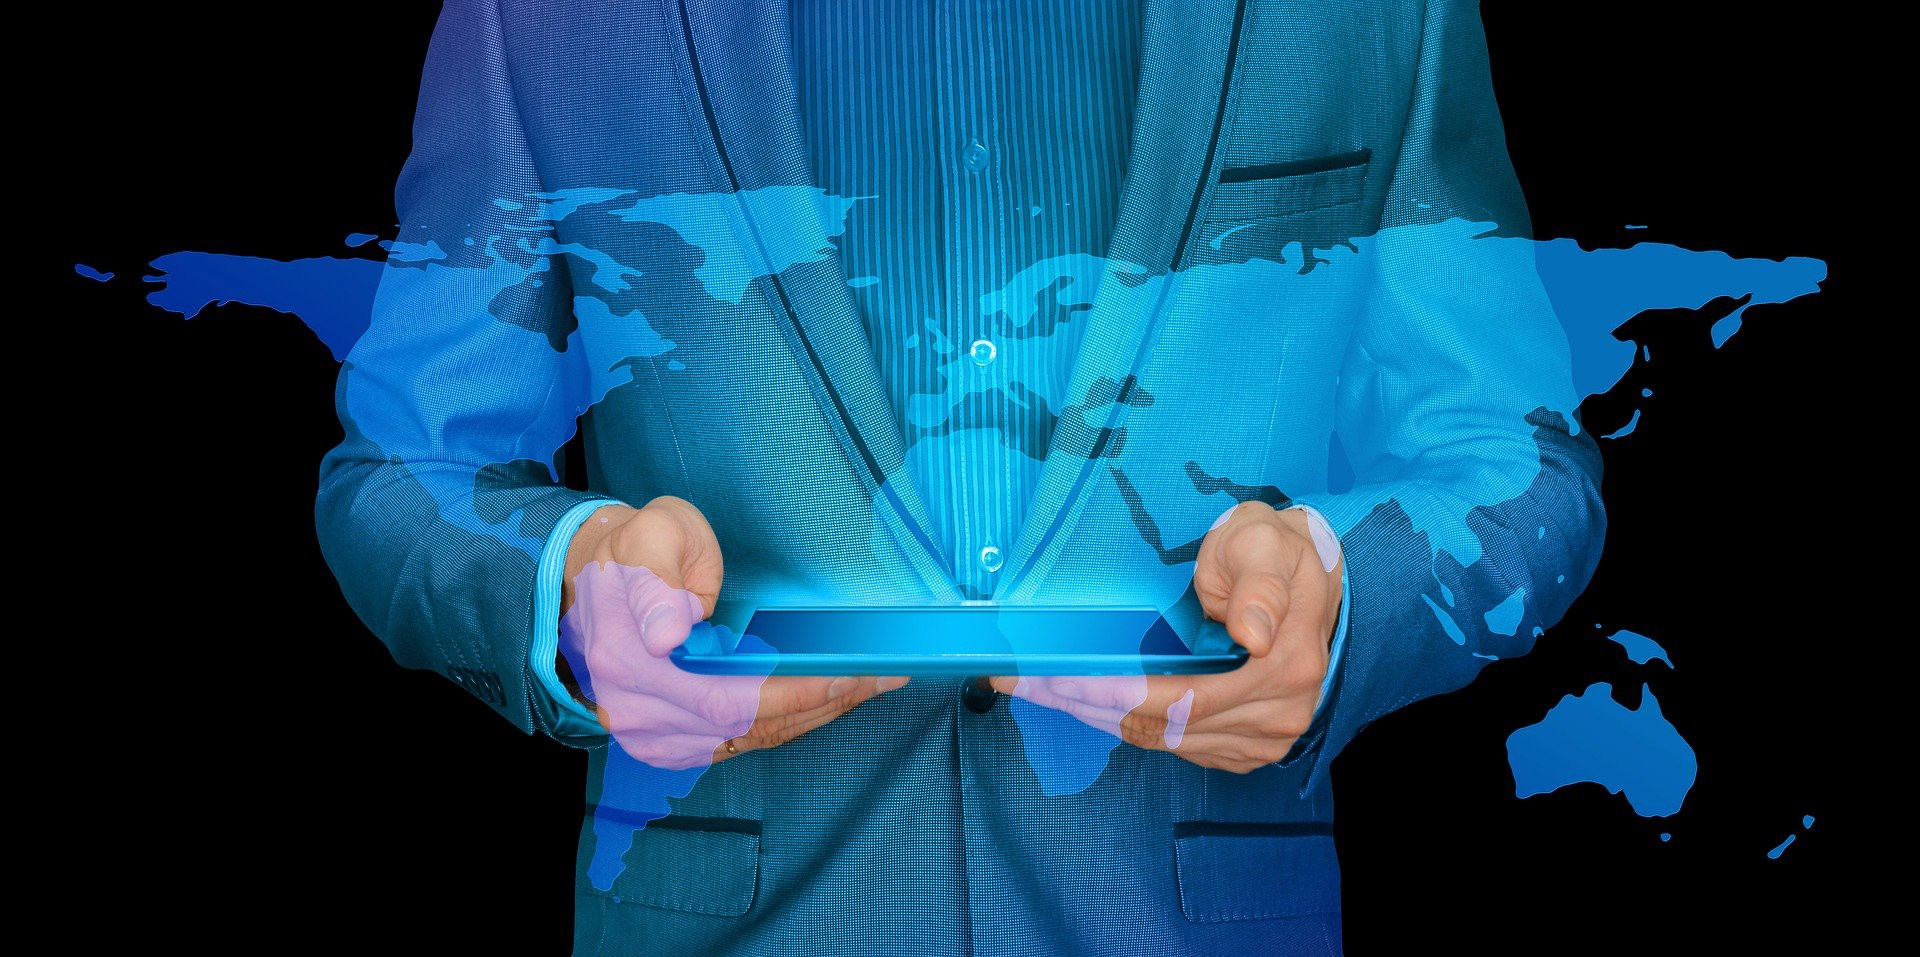 Man in a suit holding a digital tablet device, with a blue overlay of the contintents of the globe.